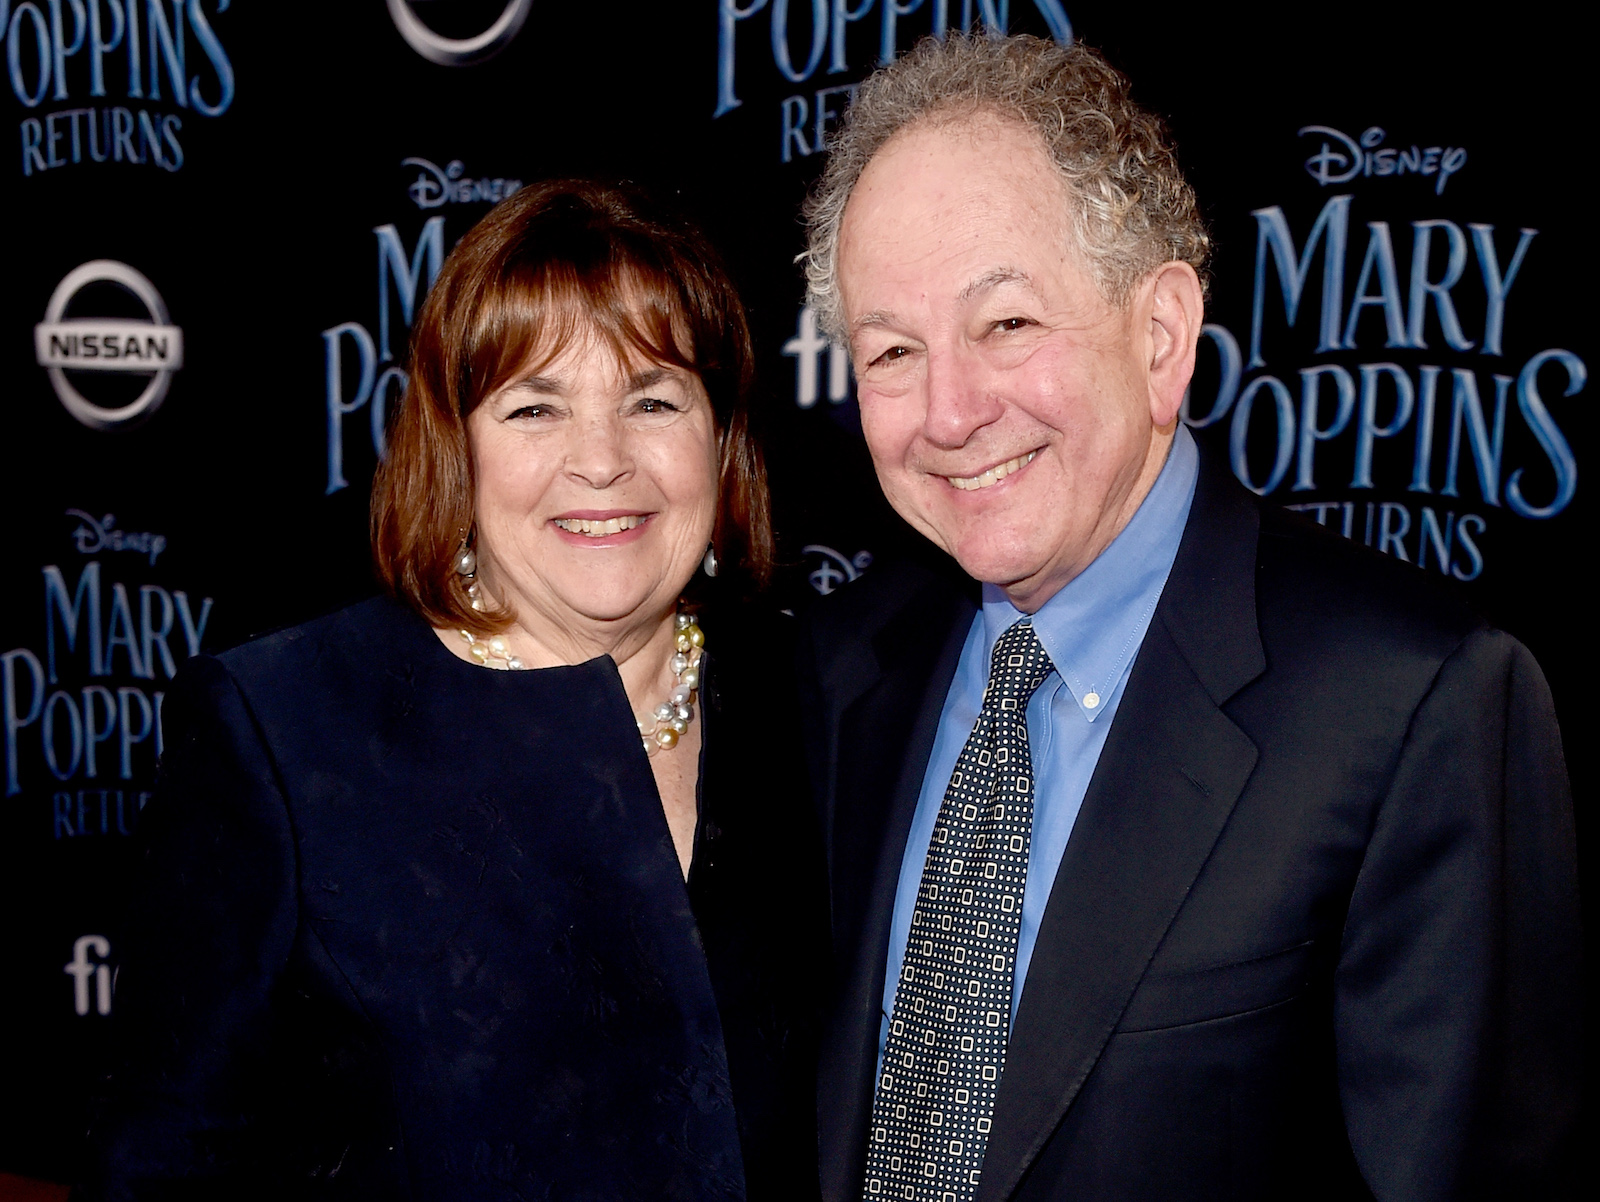 ina-garten-mary-poppins-FT-BLOG1218.jpg